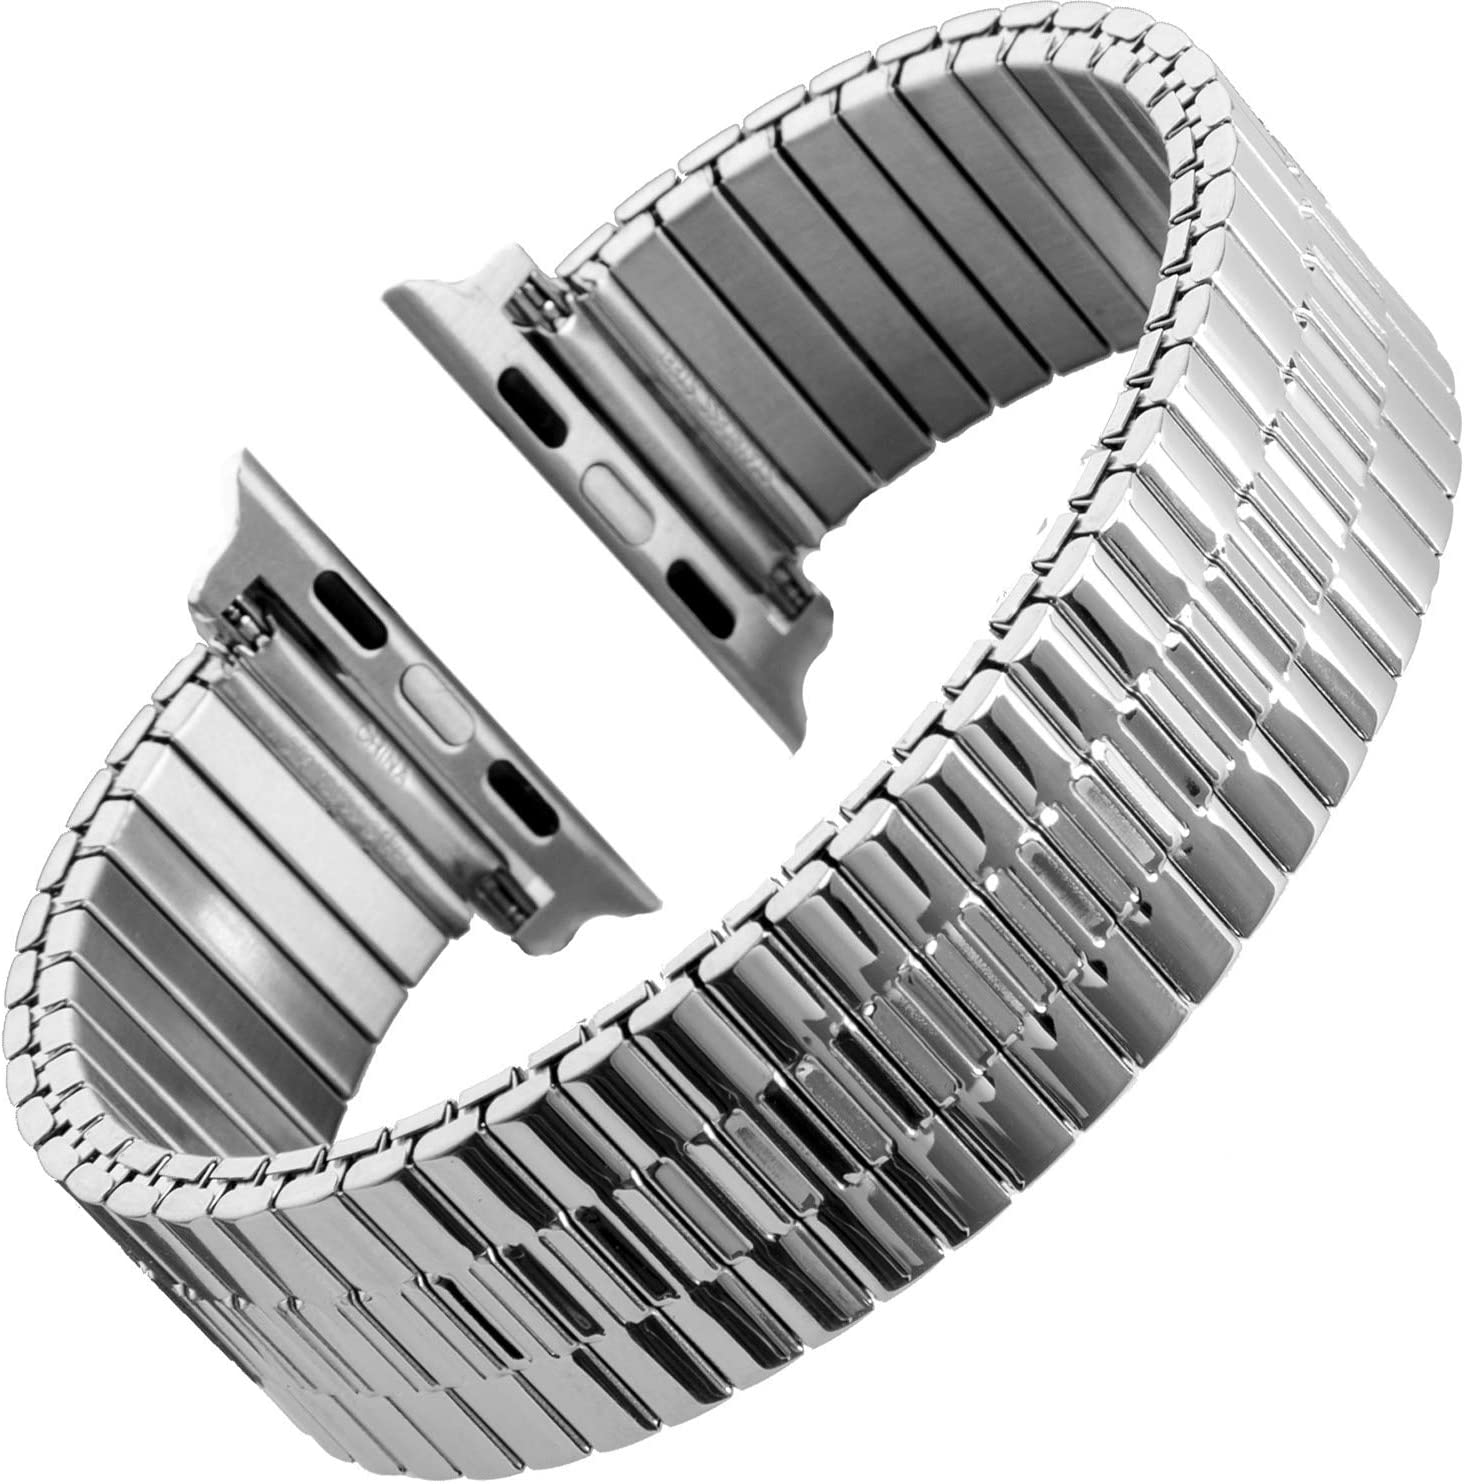 Gilden for Apple 38mm/40mm 42mm/44mm Expansion Wide Stainless Steel Metal Watch Band 552W-SL-SMART (Extra Long fits 38mm/40mm Apple Watch, Stainless Steel)